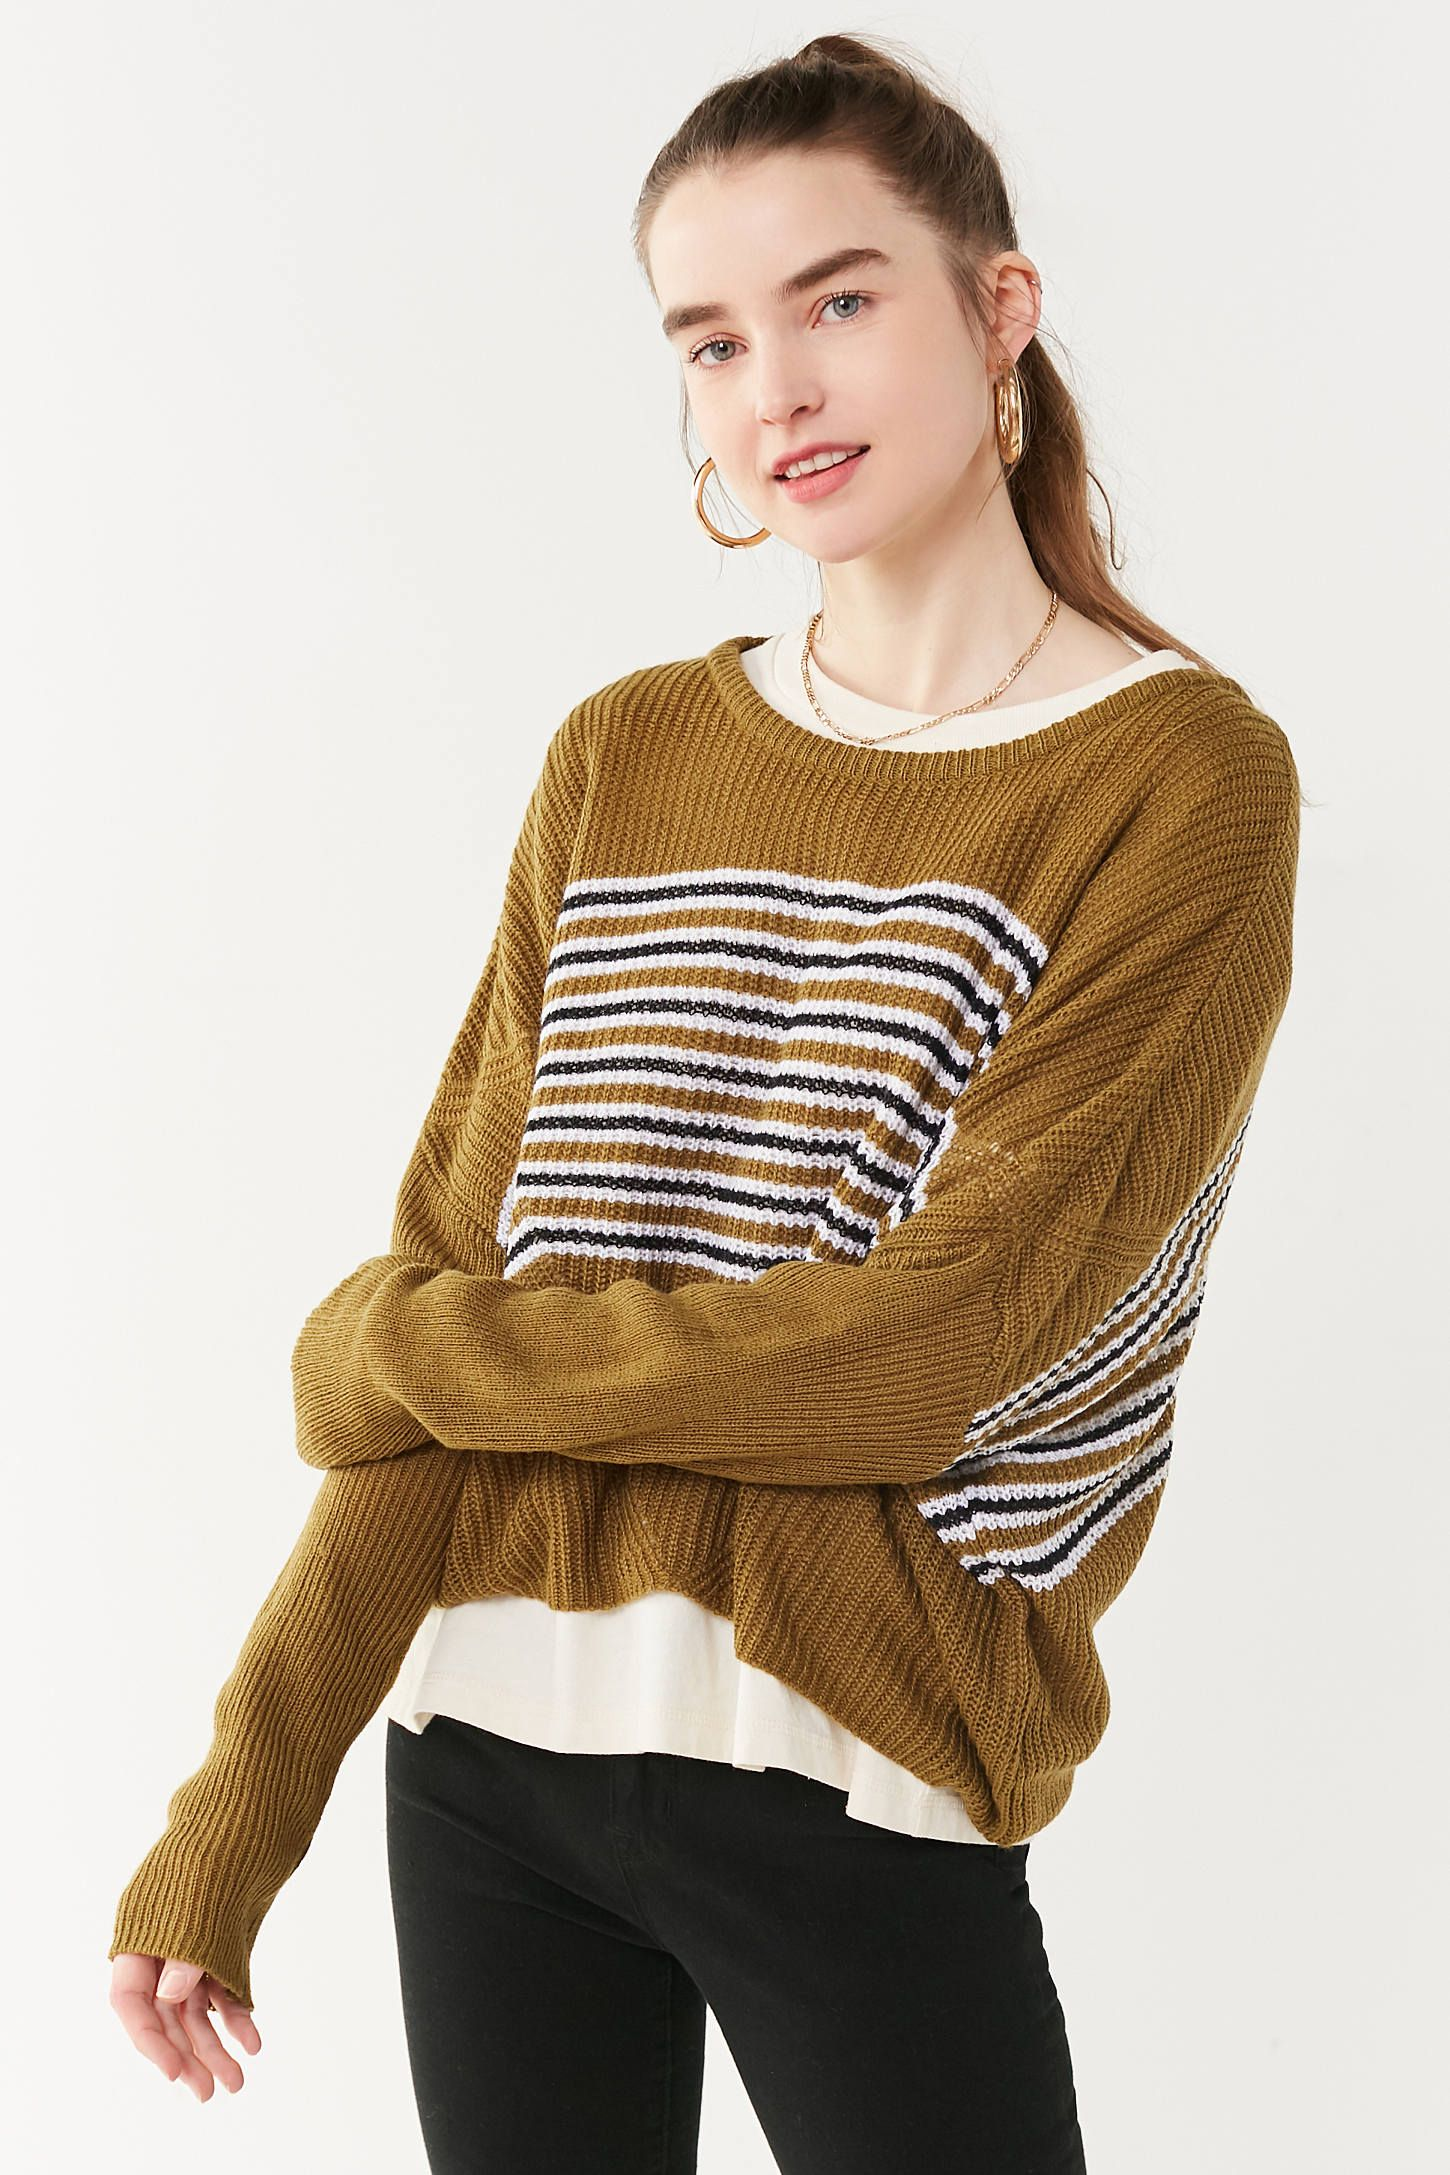 e2860caa0862c Sweaters + Cardigans for Women. UO Dolman Pullover Sweater | Urban  Outfitters